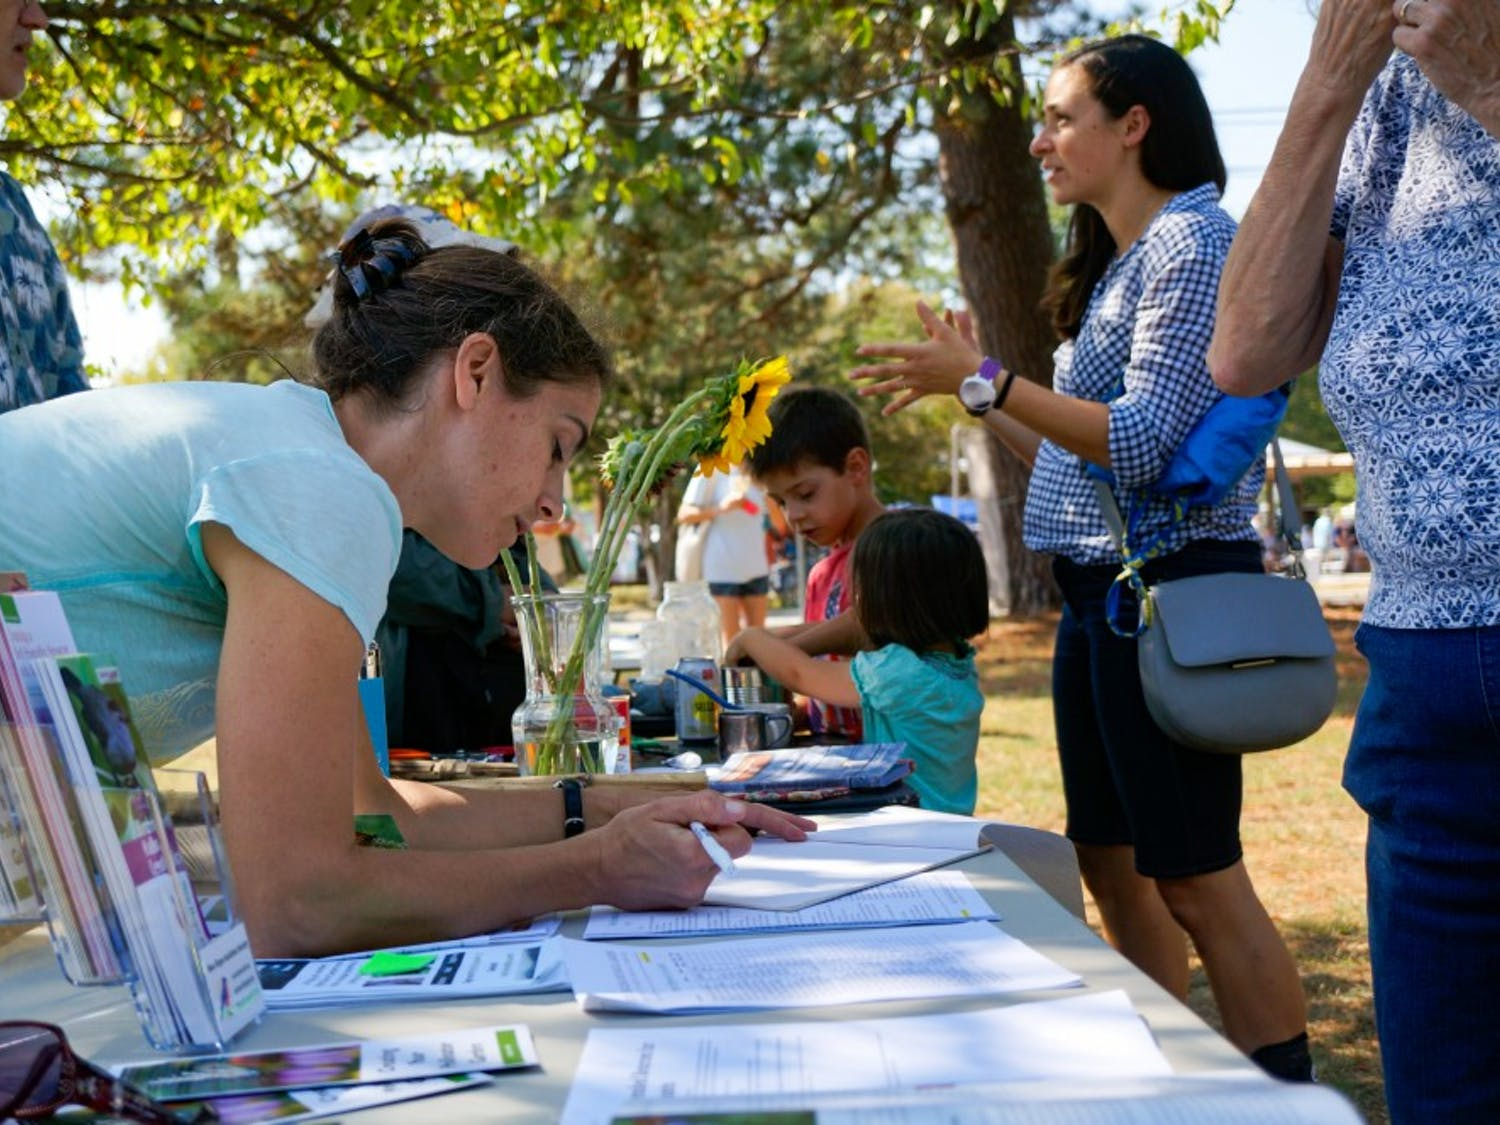 Carrboro resident Jeanette O'Conner, 37, writes her name down to receive more information regarding the Carrboro Community Climate Action Plan on Saturday, Sept. 21, 2019.